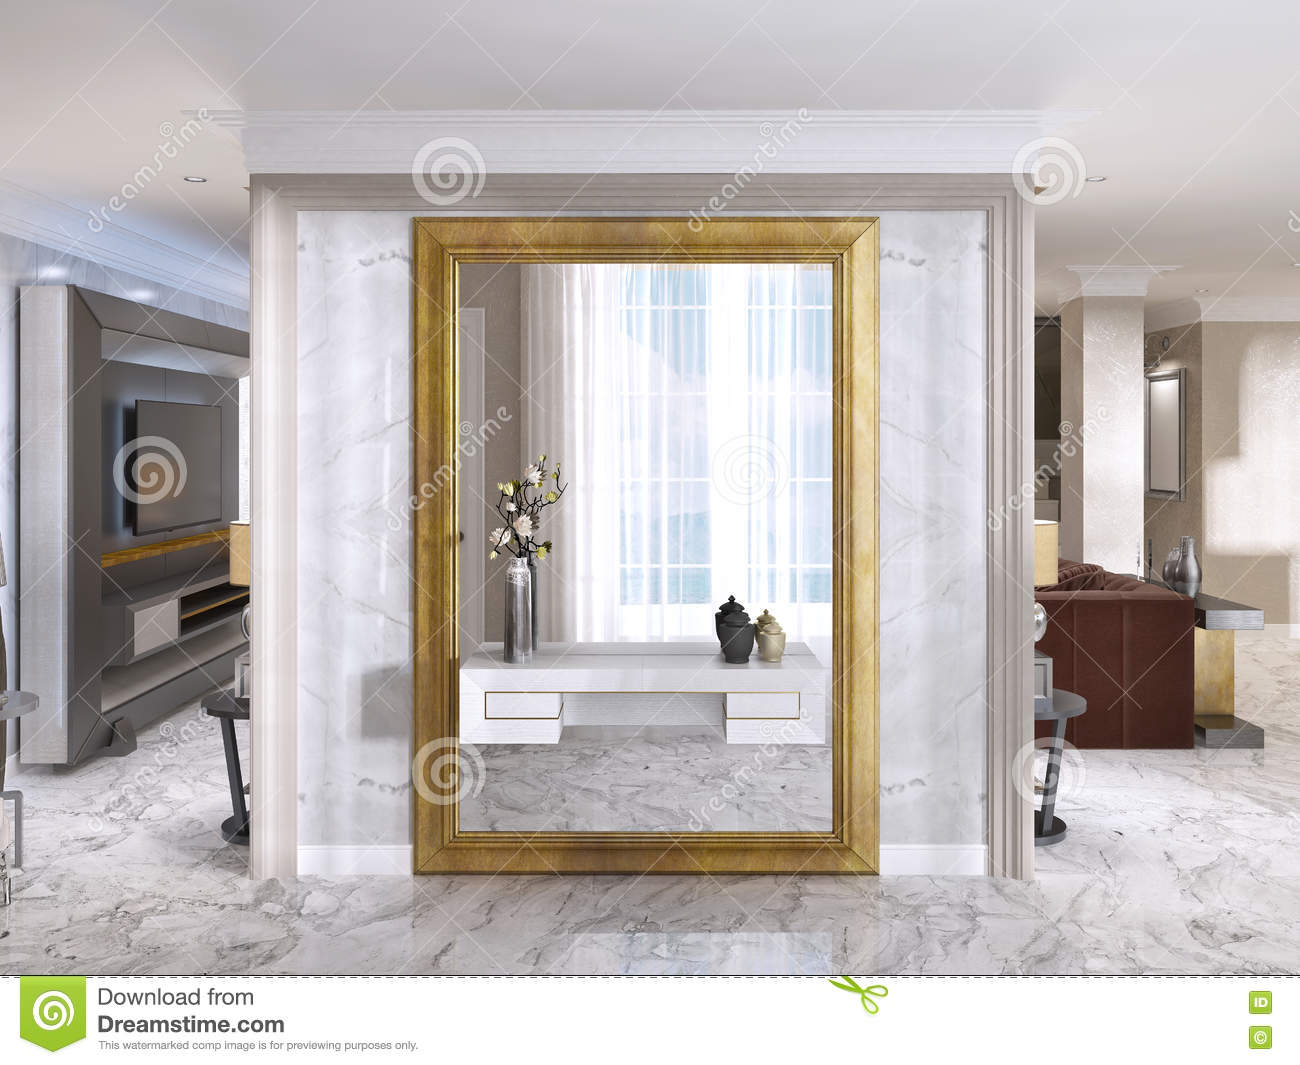 Hall d 39 entr e luxueux d 39 art d co avec un grand miroir de for Deco grand miroir